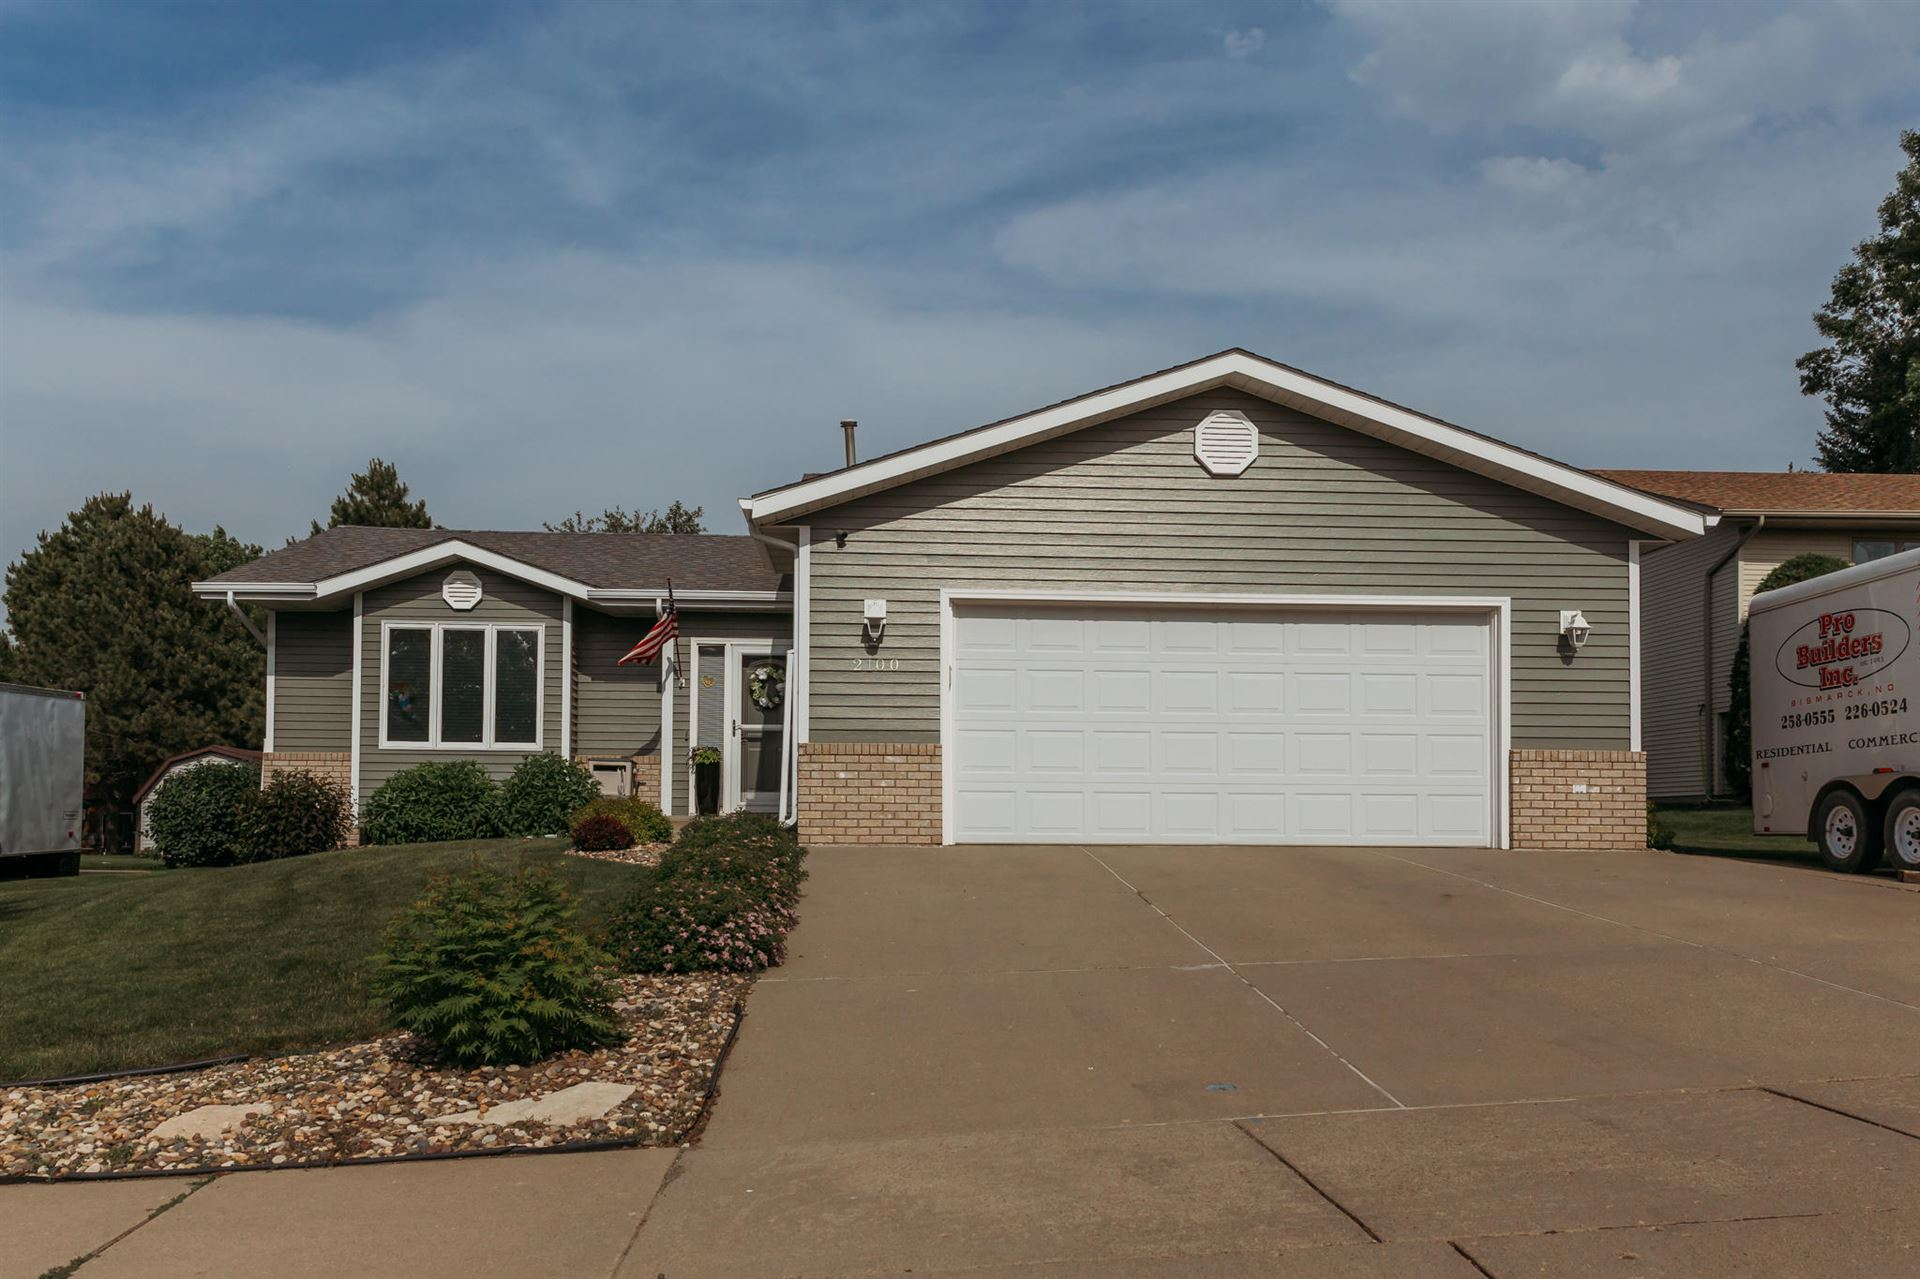 2100 10th Avenue SE, Mandan, ND 58554 - #: 405084